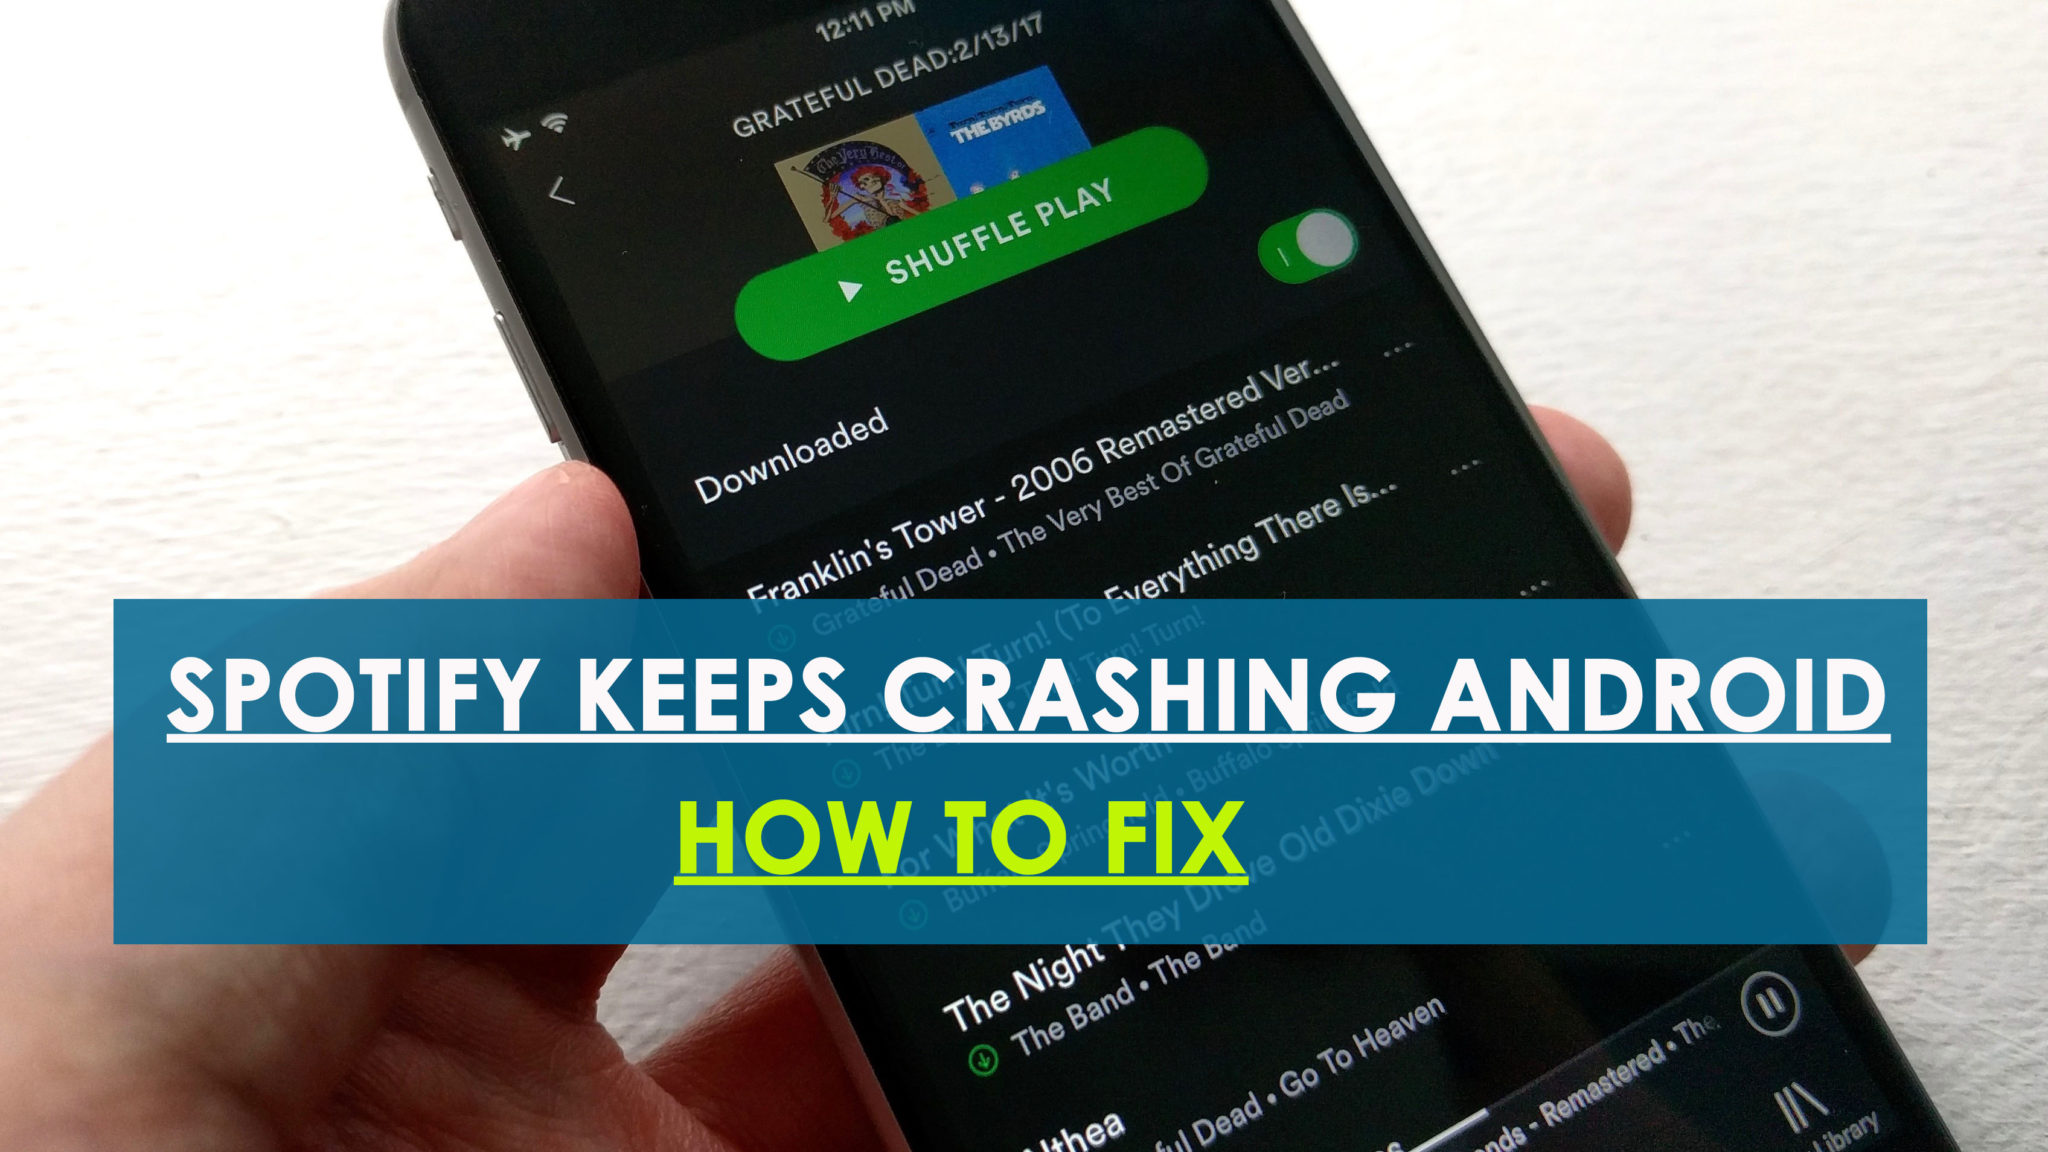 Spotify Keeps Crashing Android? 9 Methods To Fix Spotify Crashing And Freezing Issue On Android